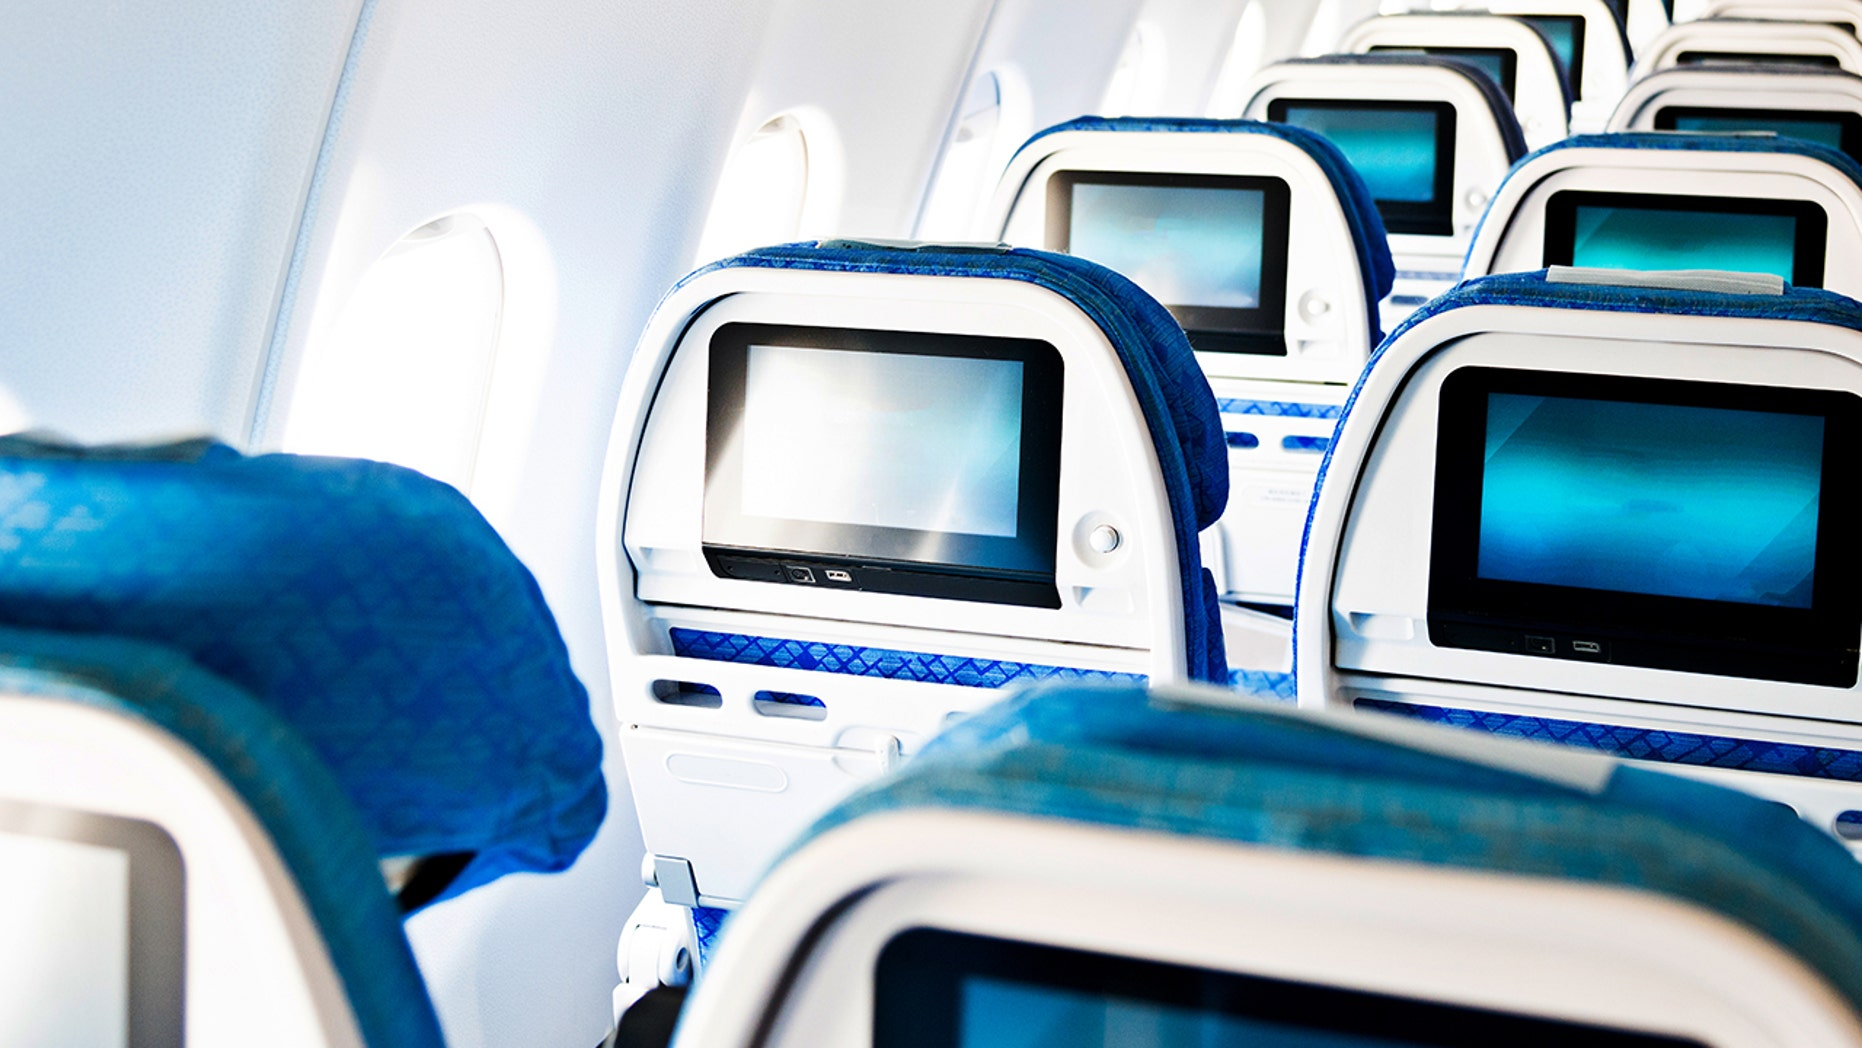 Are seat-back screens a thing of the past? Some airlines are already phasing them out.